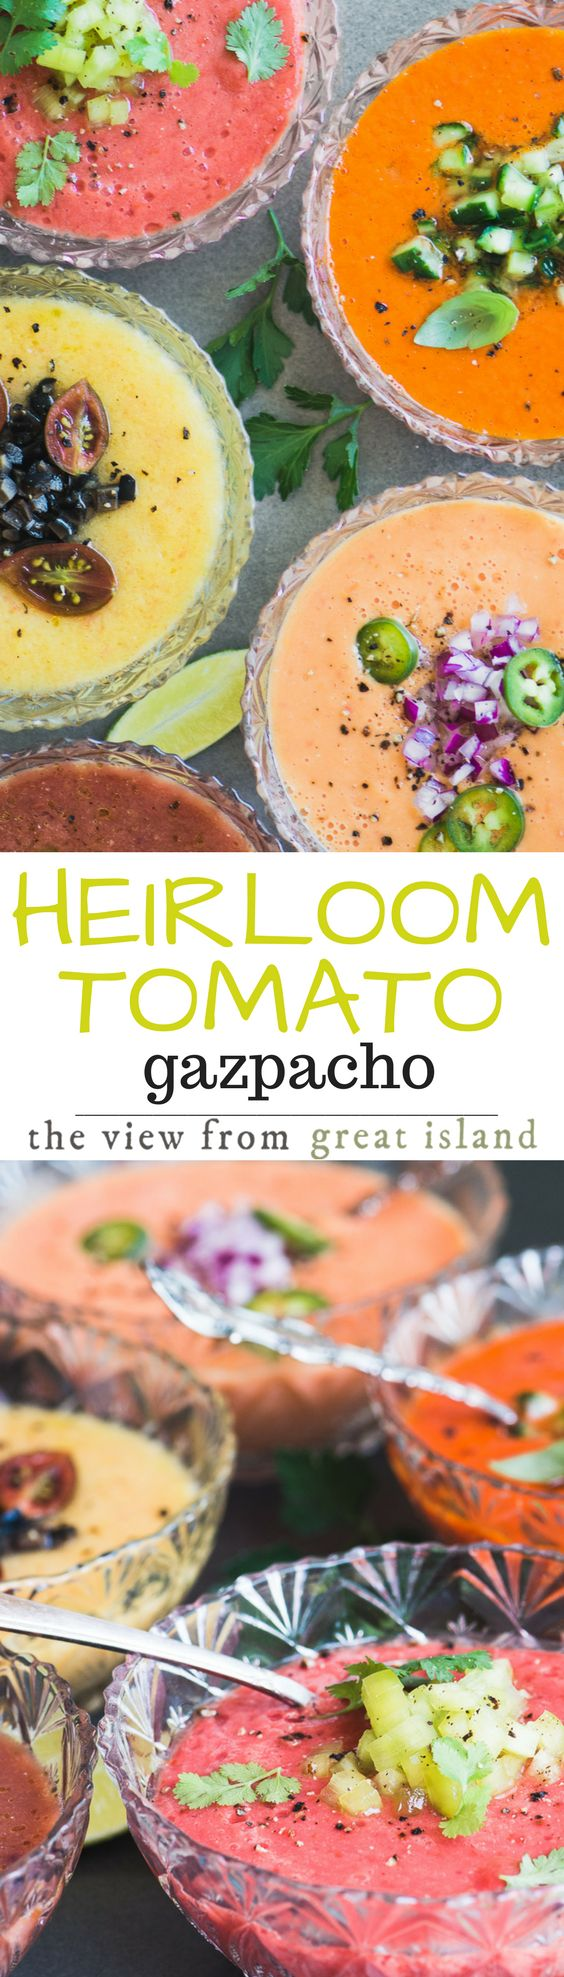 Today I'm making Heirloom Tomato Gazpacho ~ This chilled raw tomato soup from Spain has become a beloved summer institution in our house, and this year I've changed it up with gorgeous multi-colored heirloom tomatoes. | soup | chilled soup | Spanish | appetizer | summer | weddings | showers | entertaining |